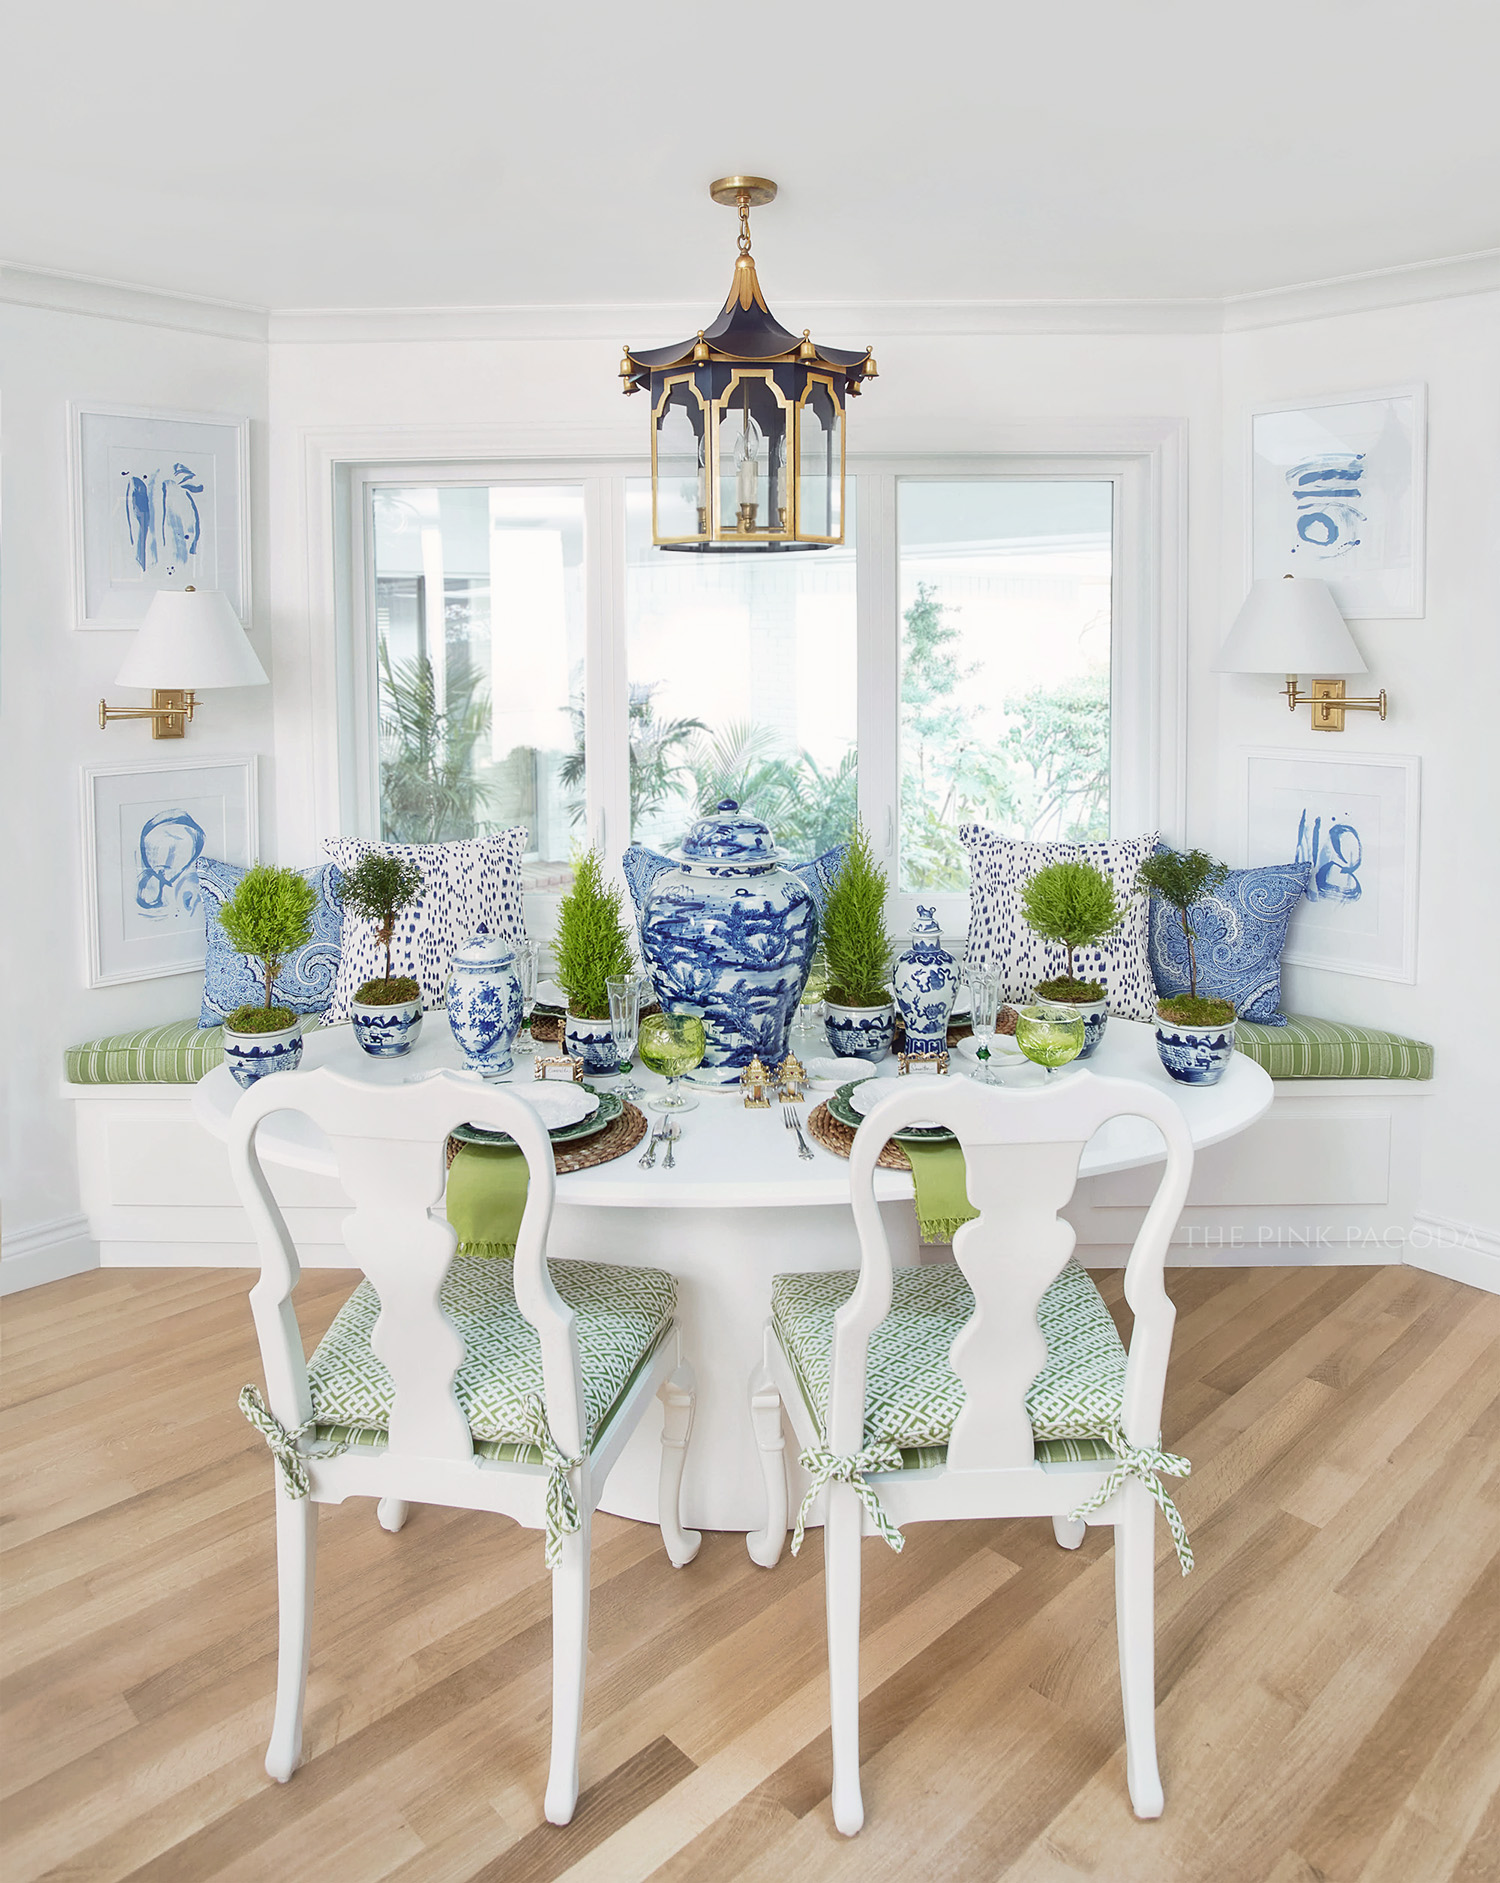 Replacement windows from Milgard was one of the updates included in The Pink Pagoda's One Room Challenge™.  The clean casement windows are perfect behind the banquette and look gorgeous flanked by Christina Baker's blue and white paper pieces.